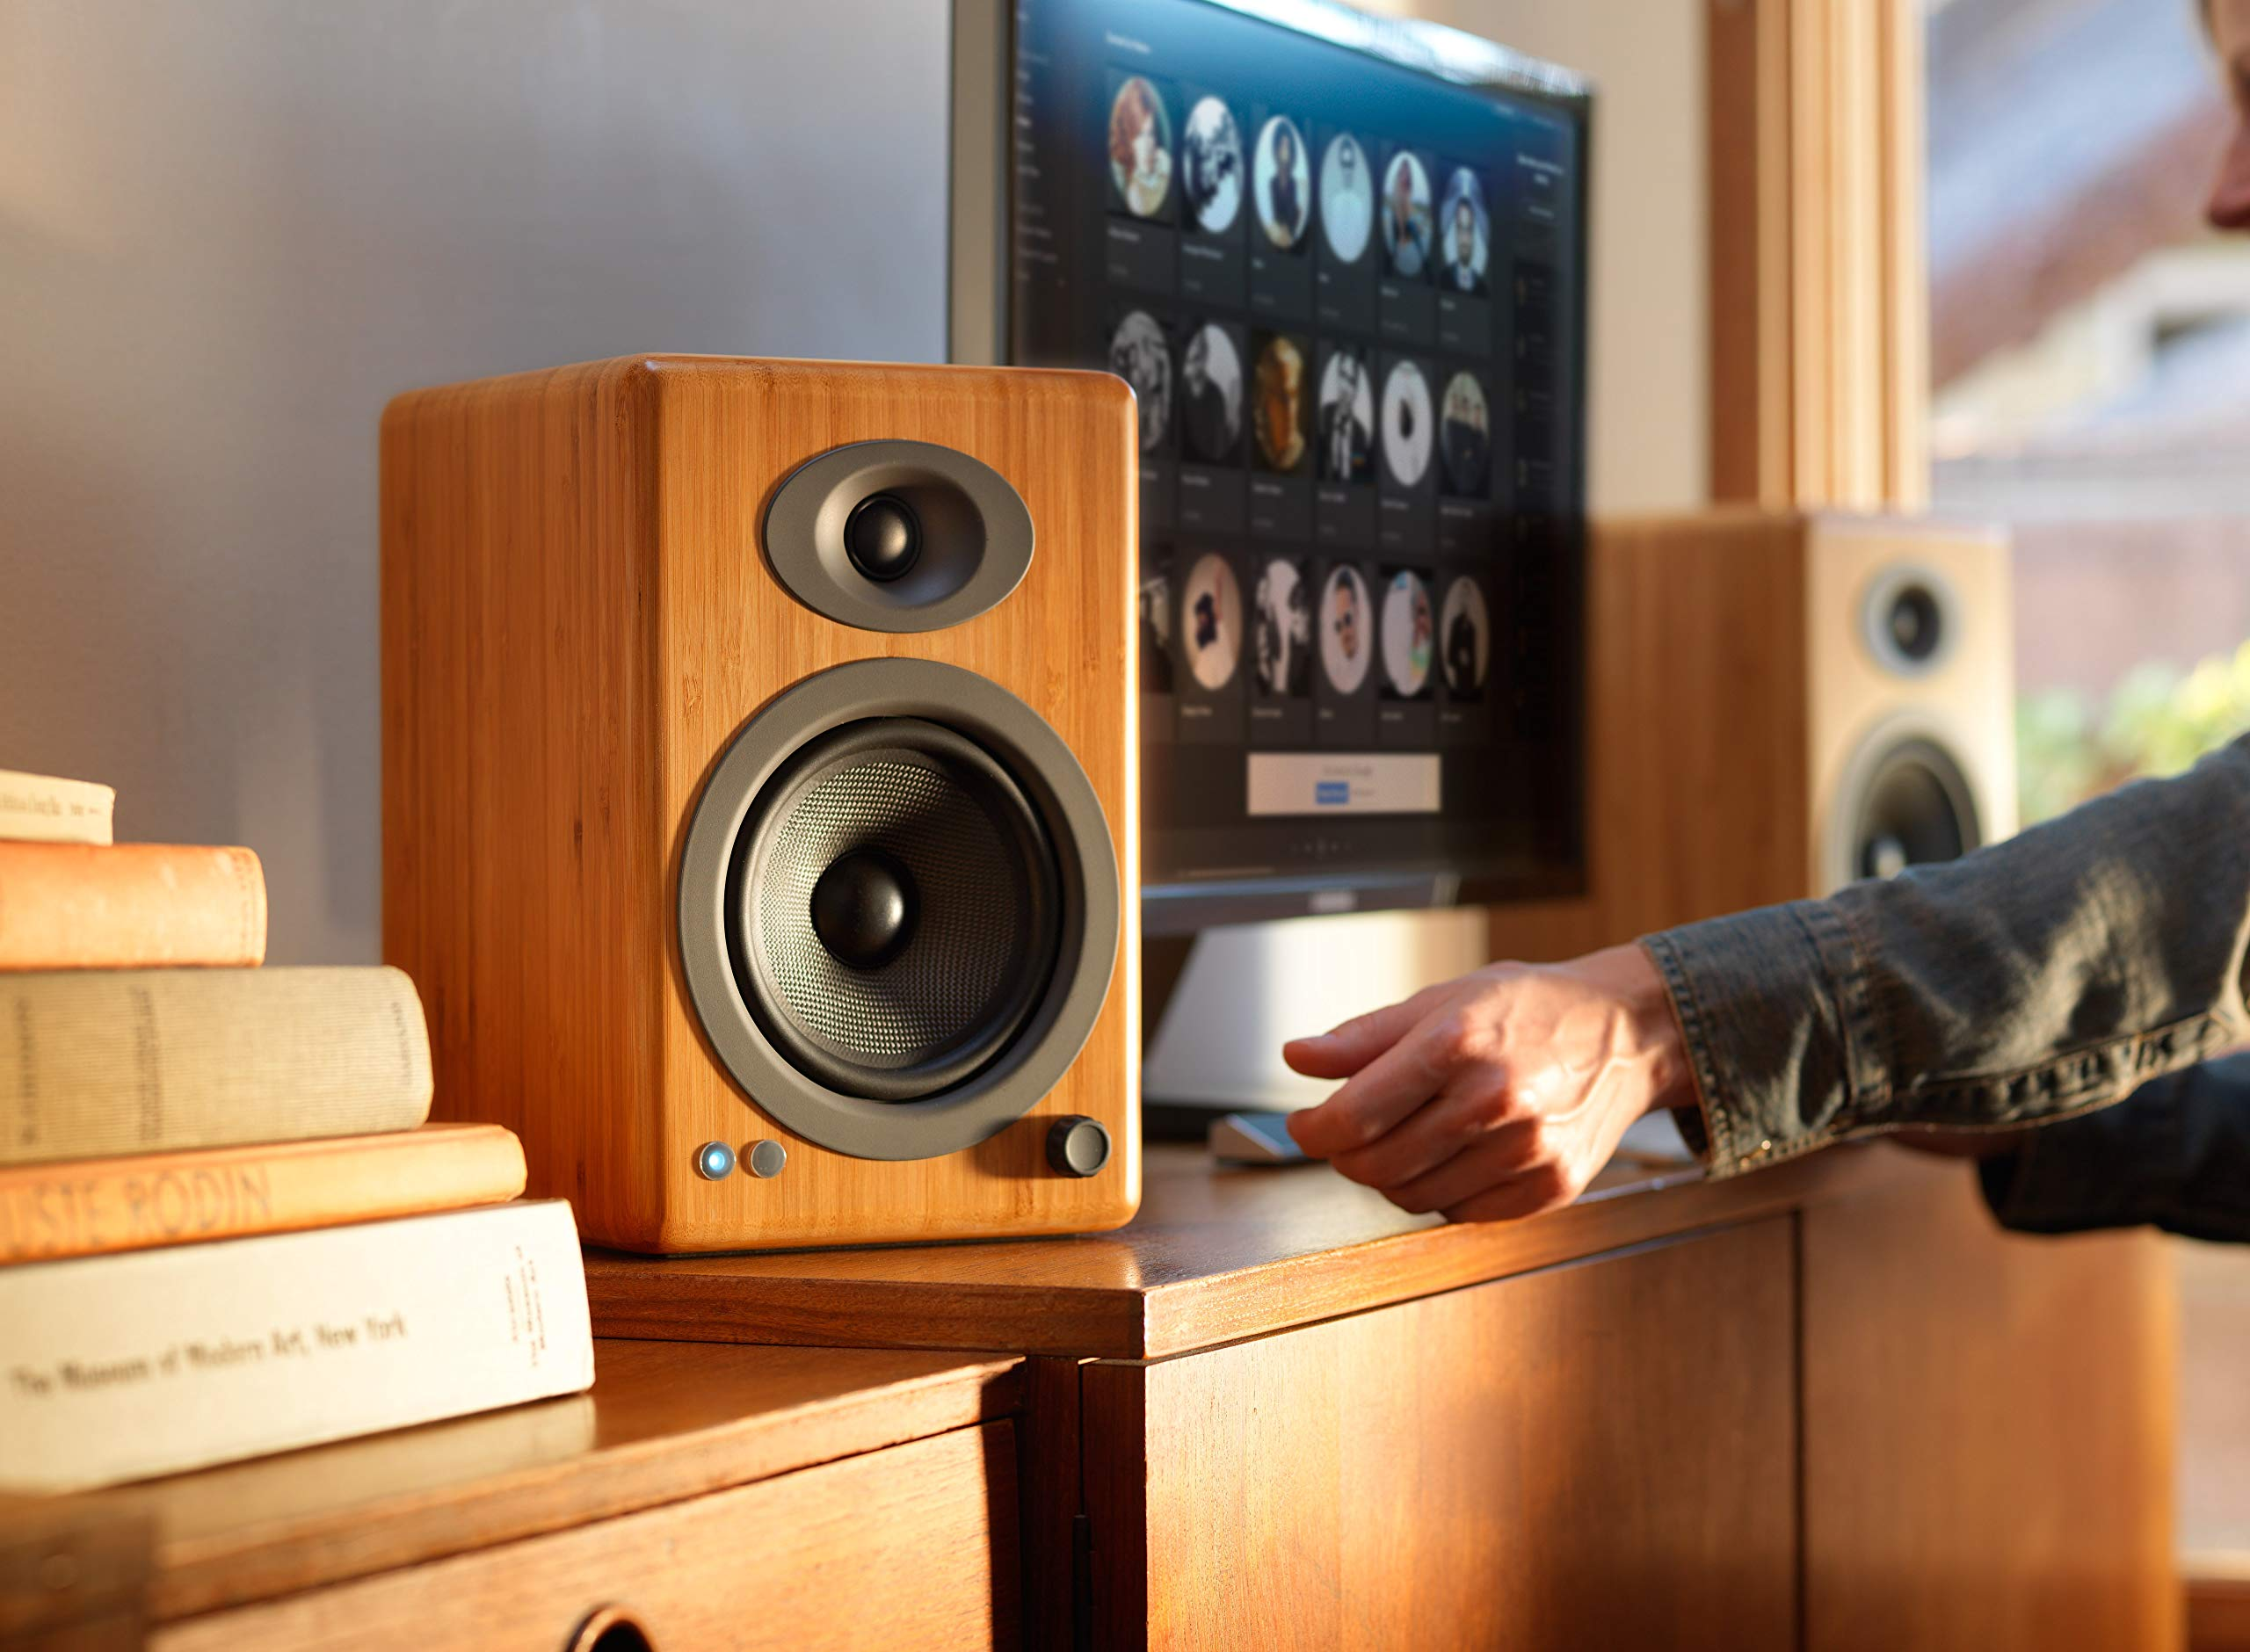 Audioengine A5+ 150W Wireless Powered Bookshelf Speakers   Built-in Analog Amplifier   aptX HD Bluetooth 24 Bit DAC, RCA and 3.5mm inputs   Solid Aluminium Remote Control   Cables Included by Audioengine (Image #7)